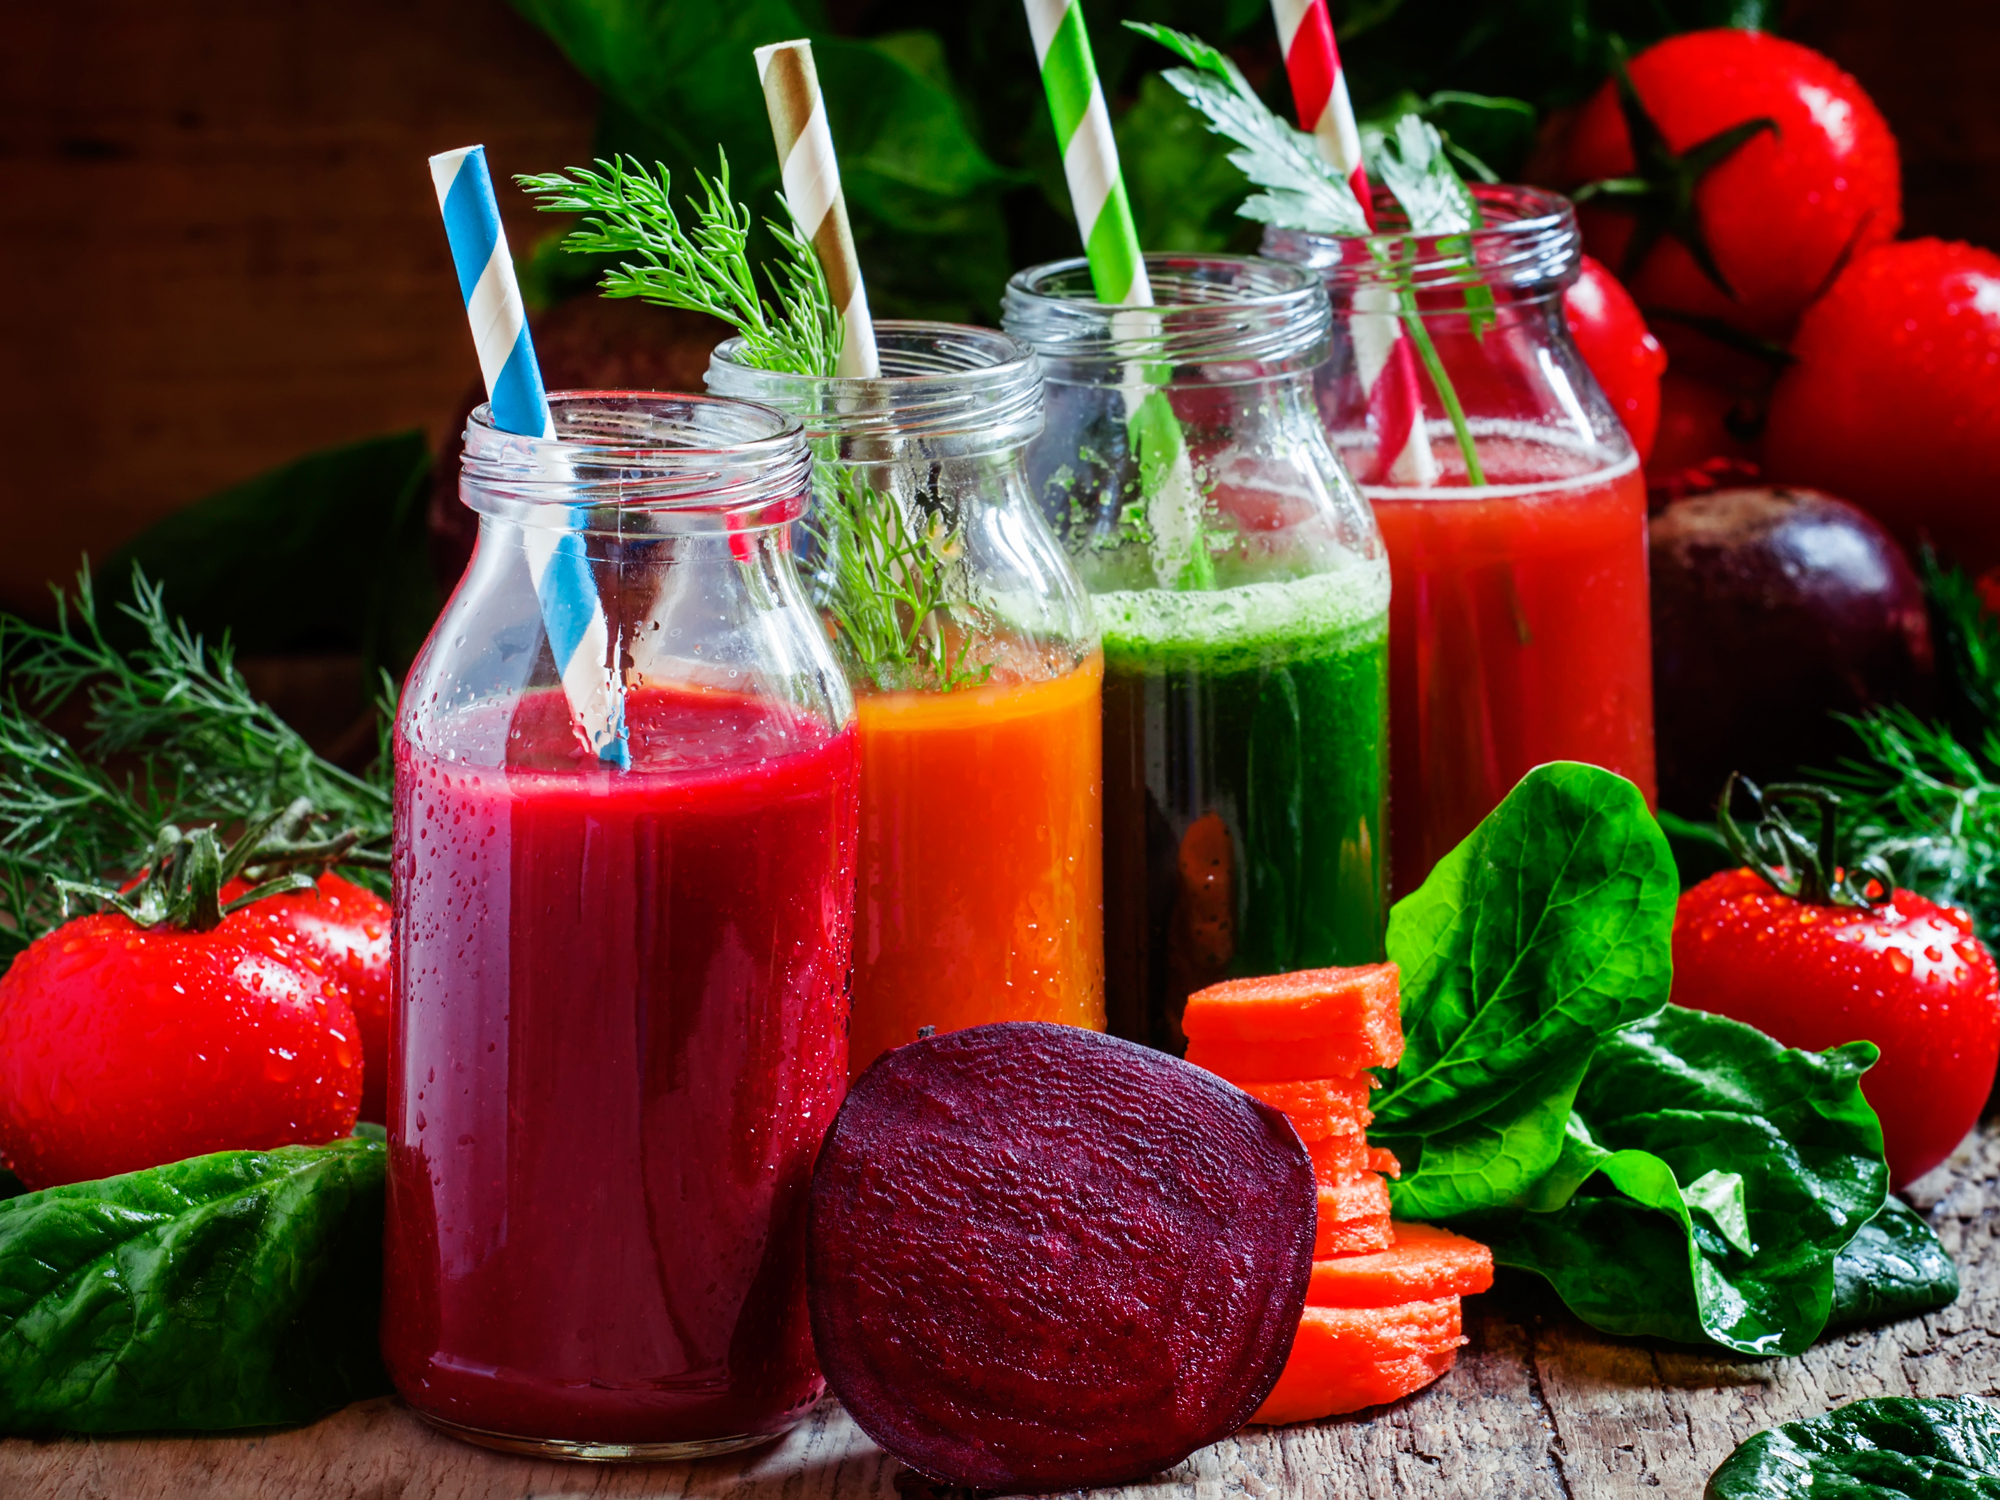 Pull stamina out of thin air with beet juice